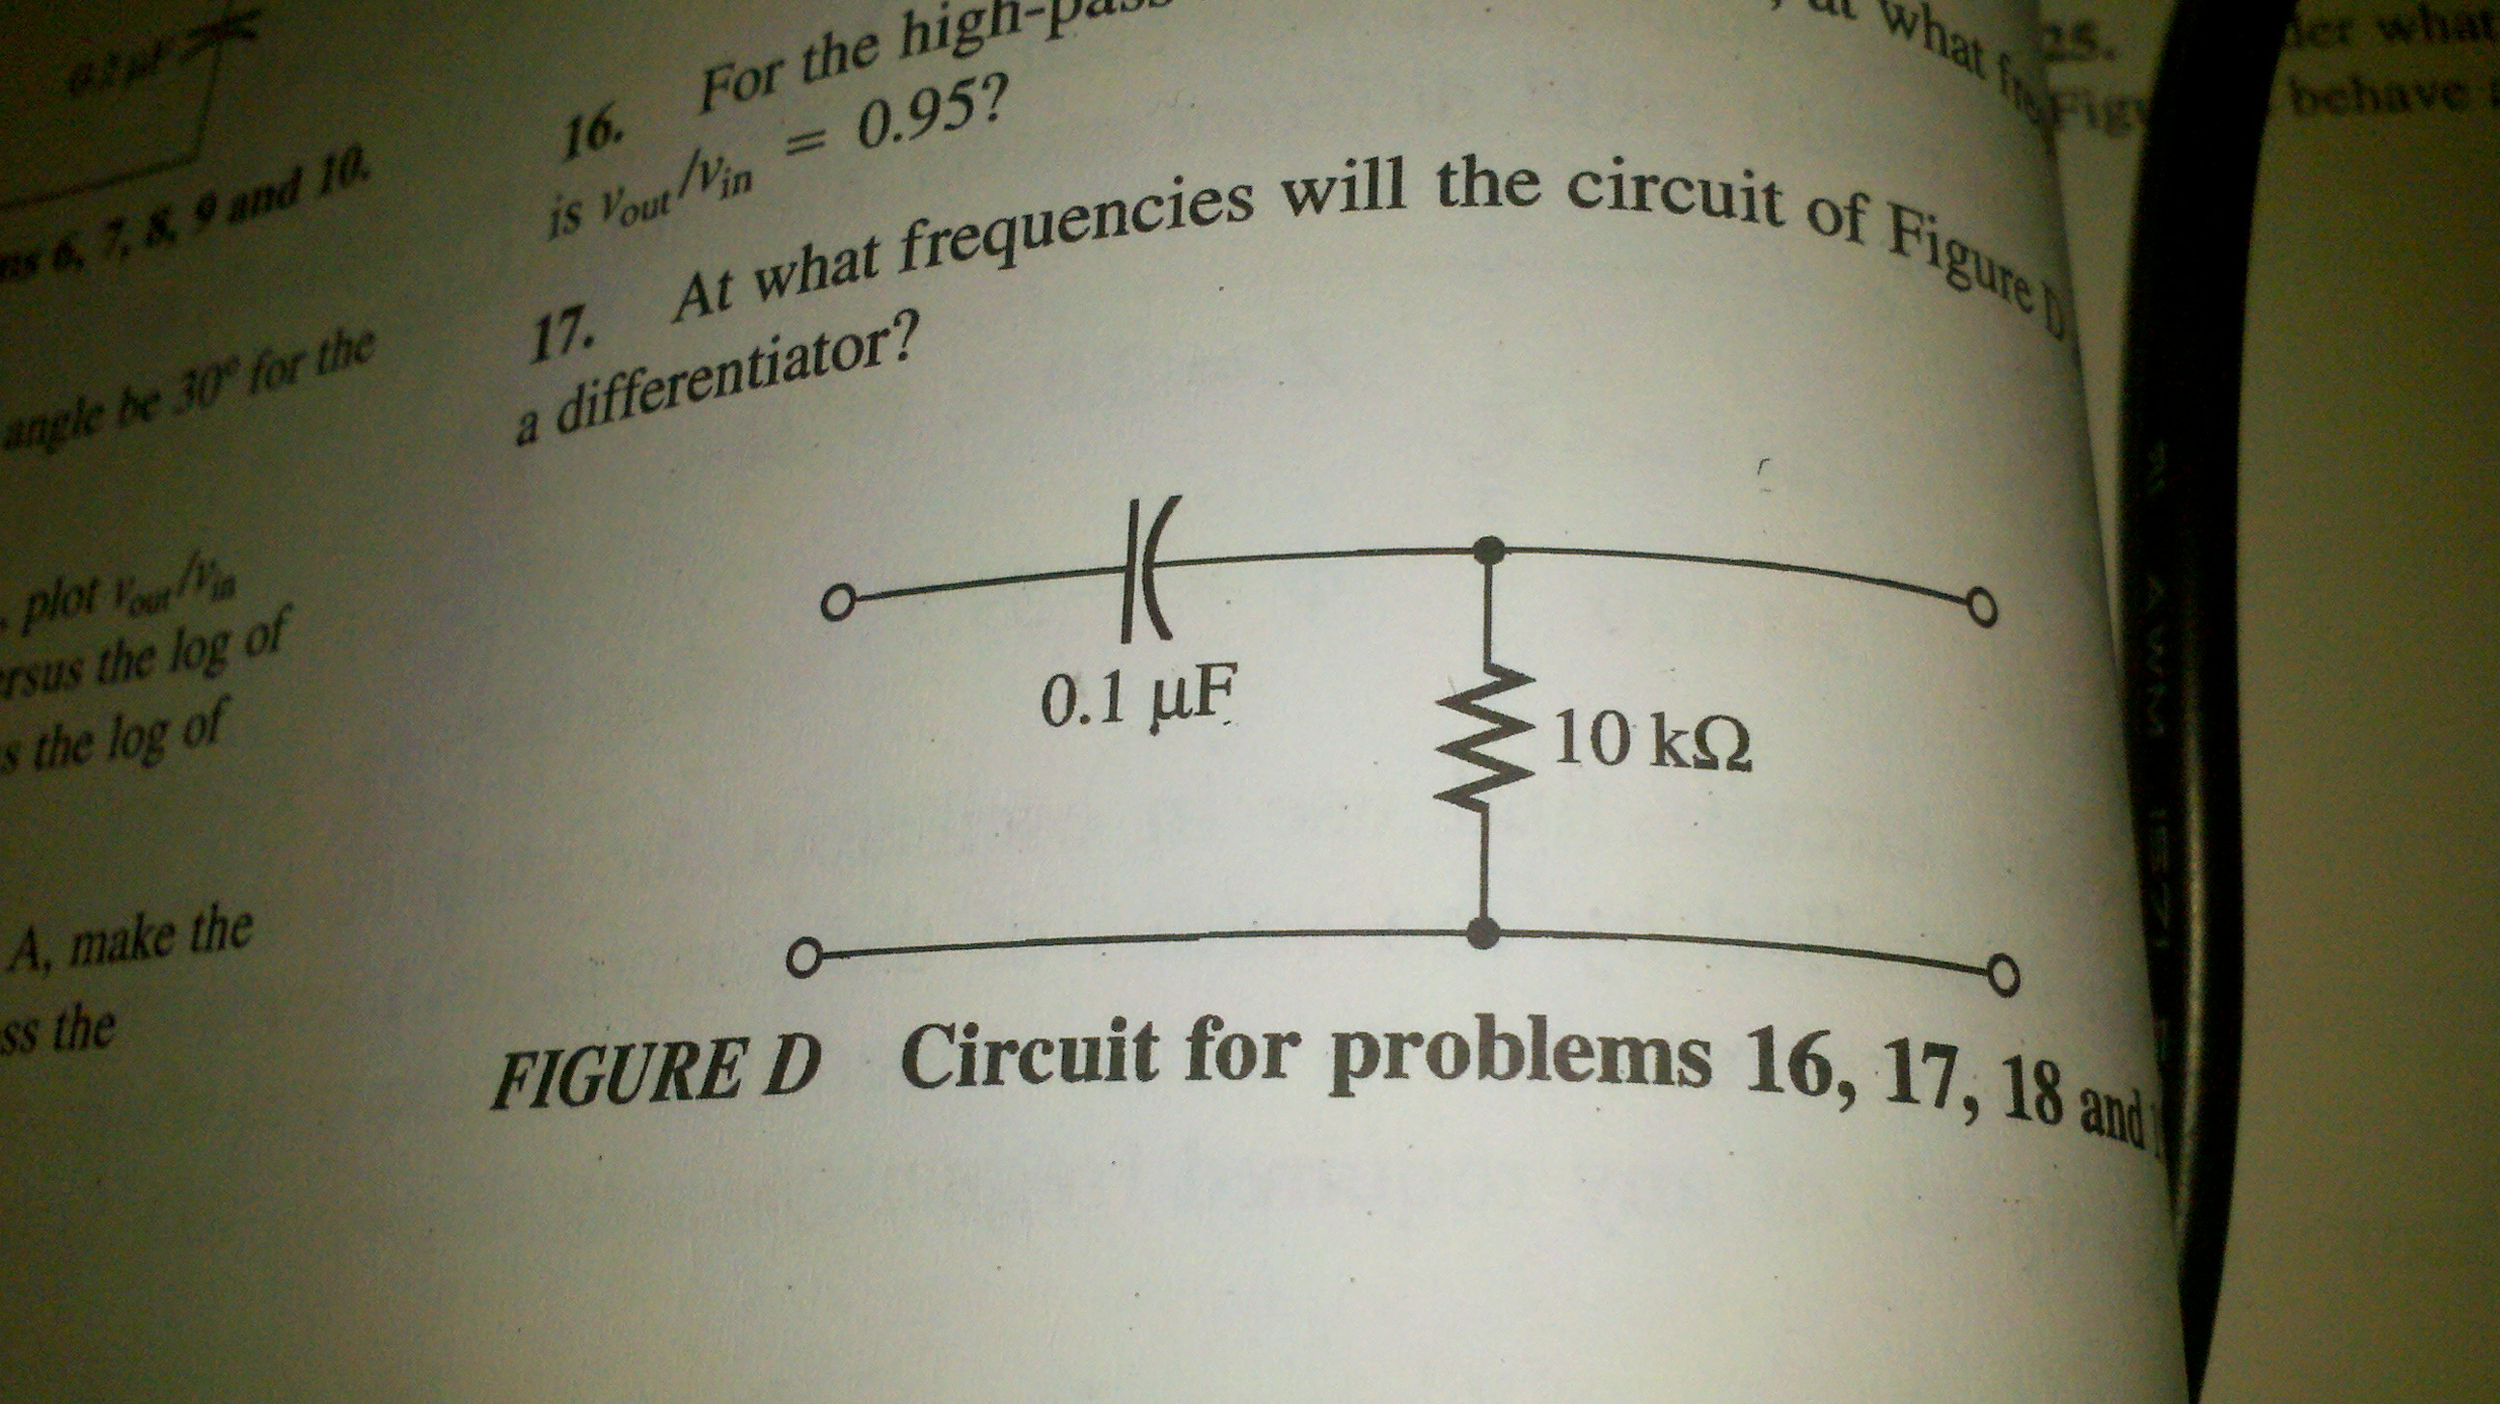 At what frequencies will the circuit of Figure D a